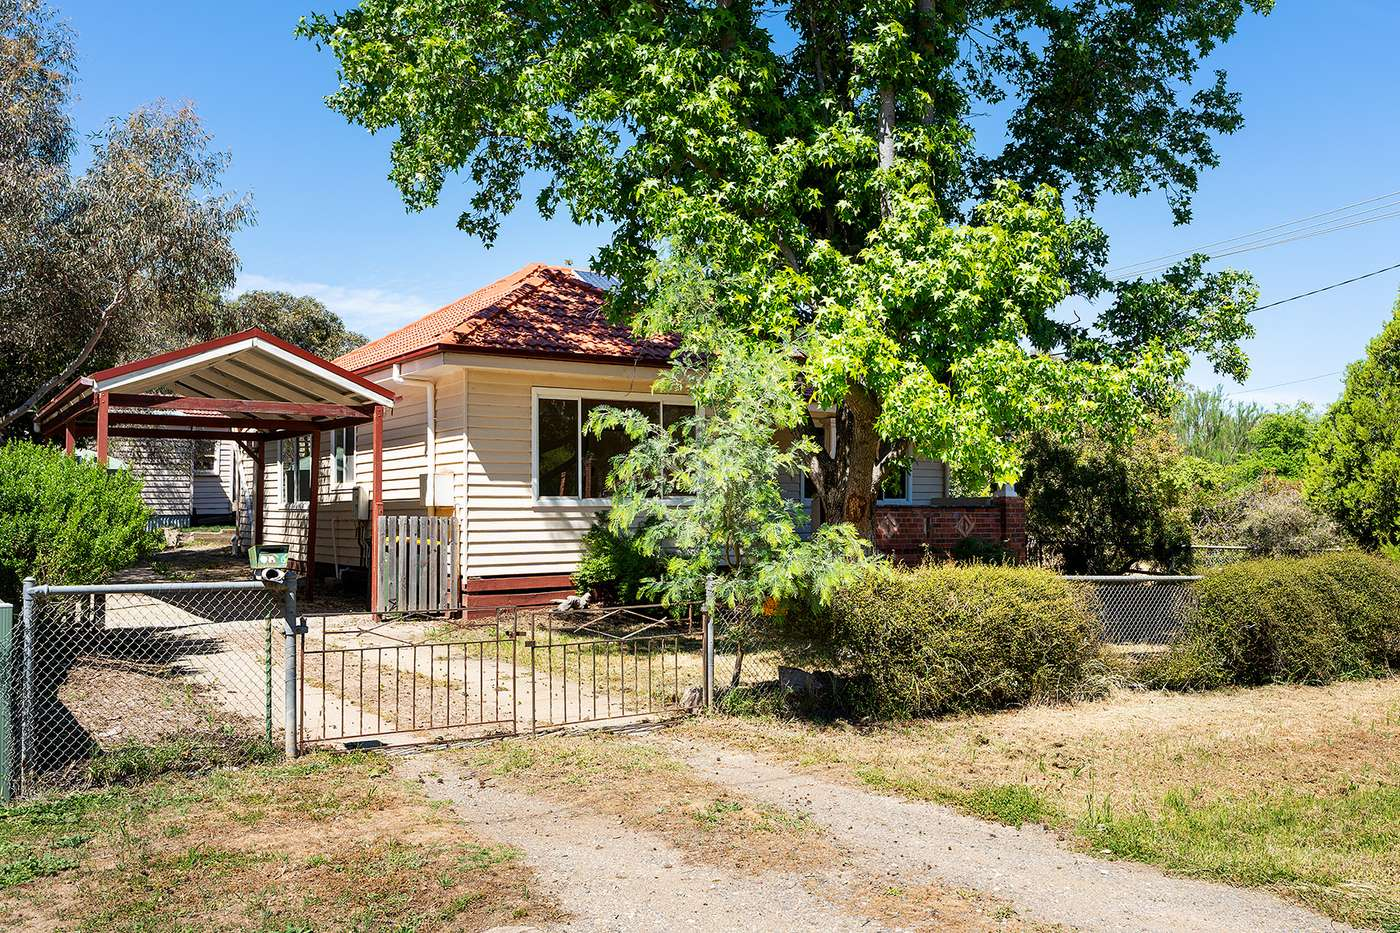 Main view of Homely house listing, 6 Dudley Street, Castlemaine, VIC 3450